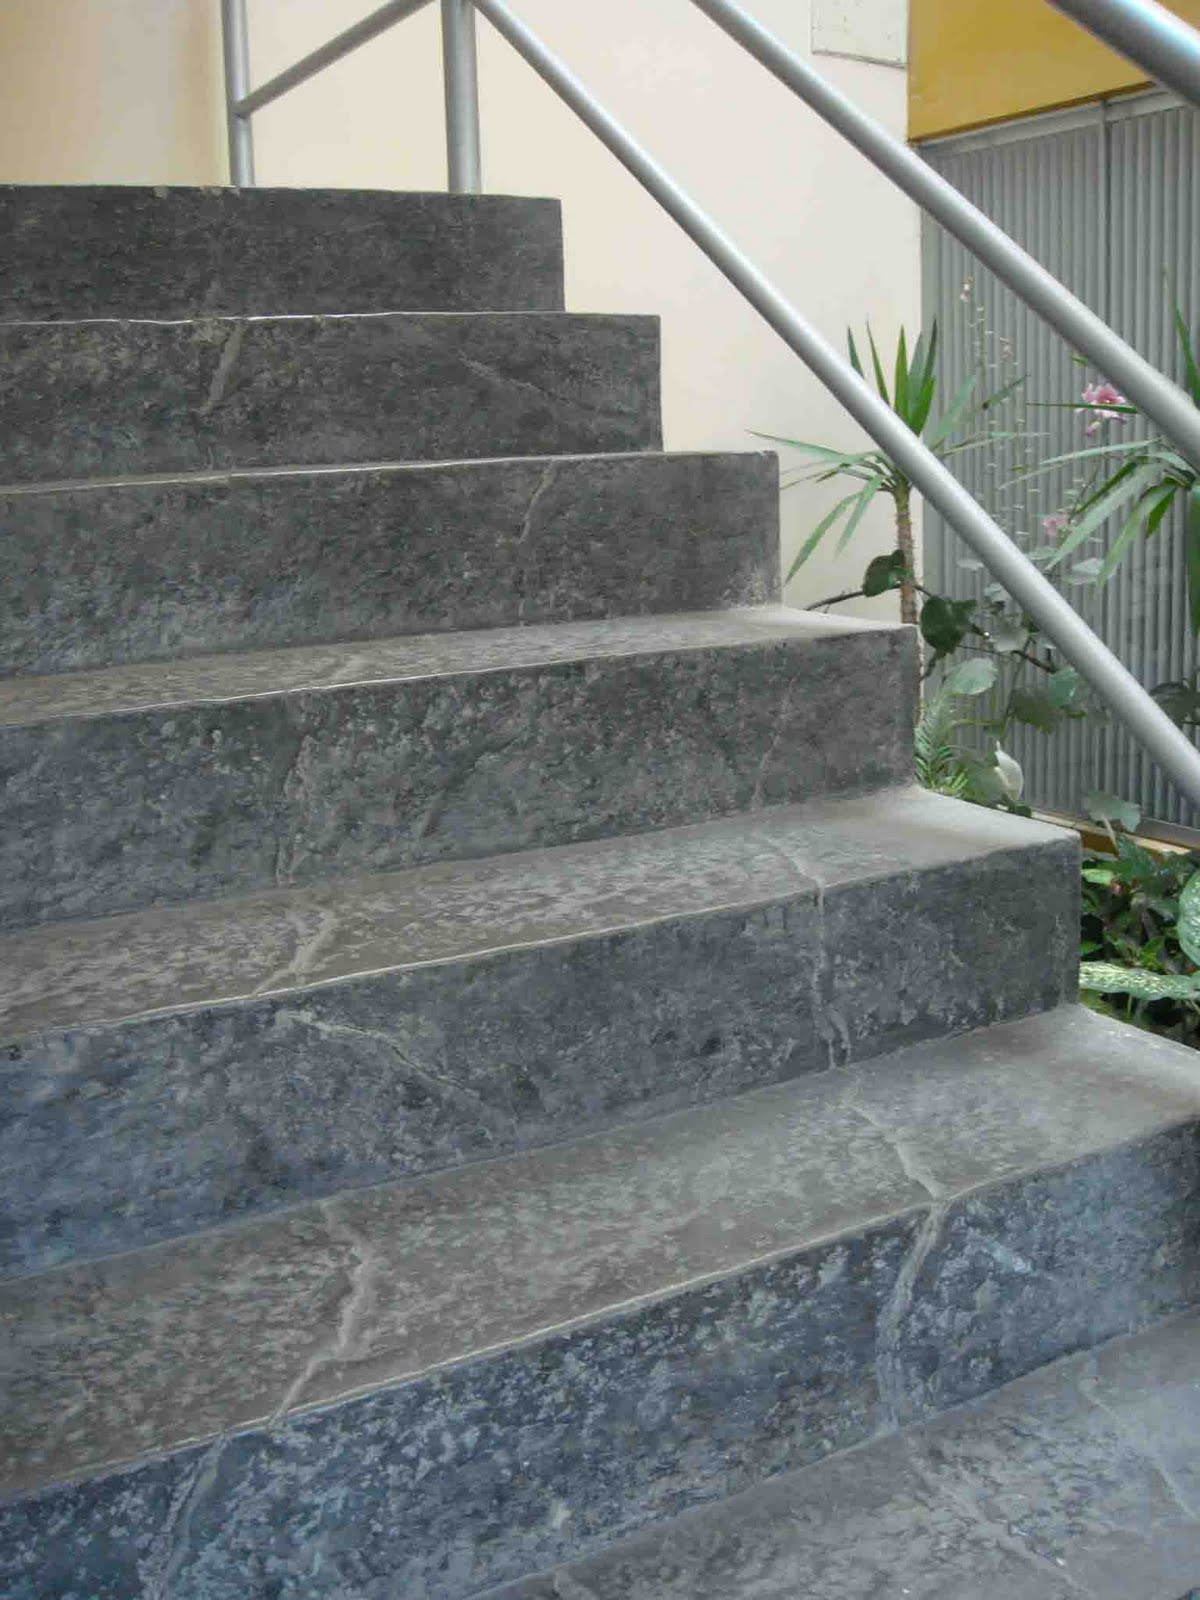 Increte per systems escalera con concreto decorativo for Escaleras de cemento con madera